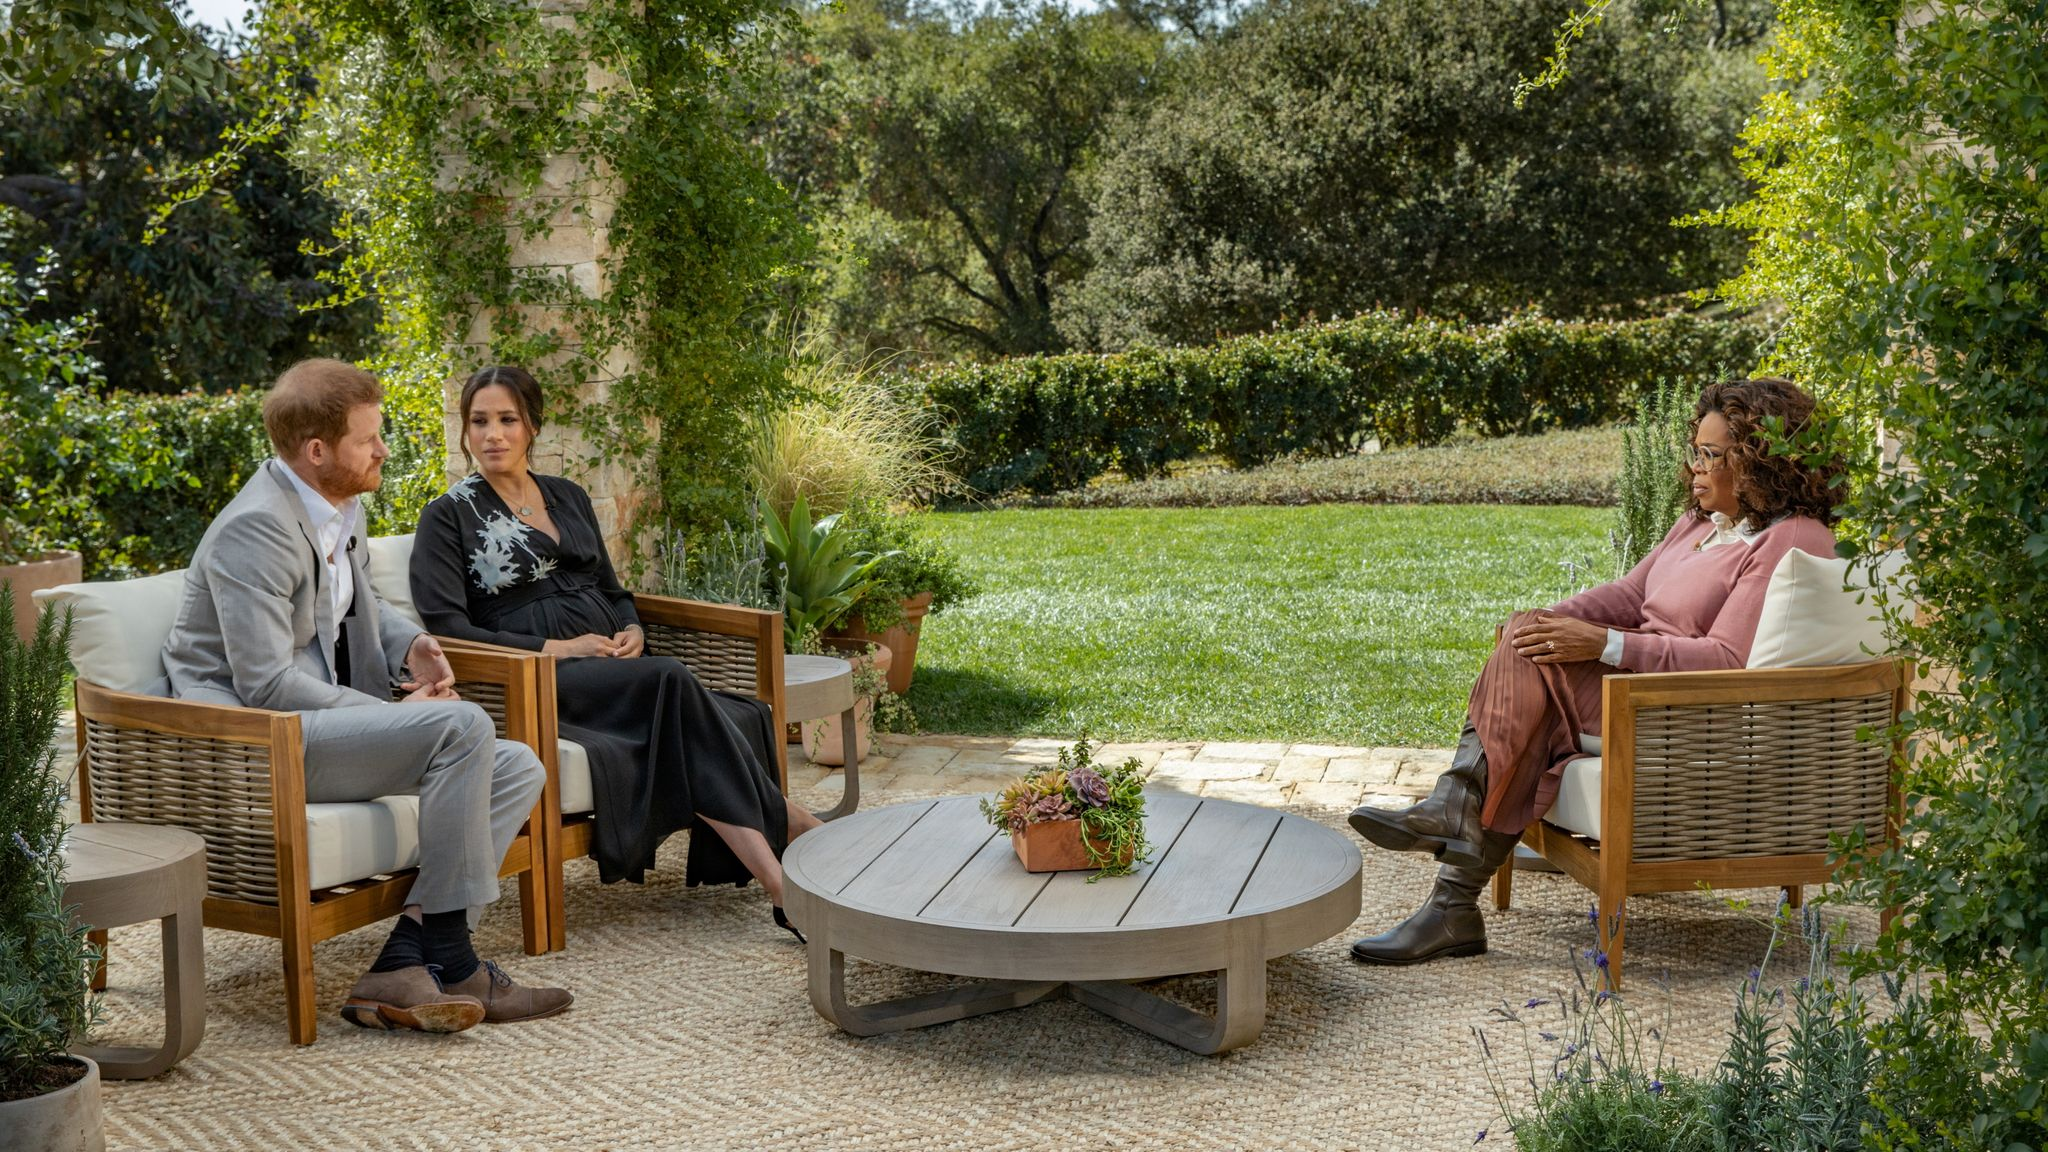 Meghan, Duchess of Sussex, and Prince Harry speak in their interview with Oprah Winfrey